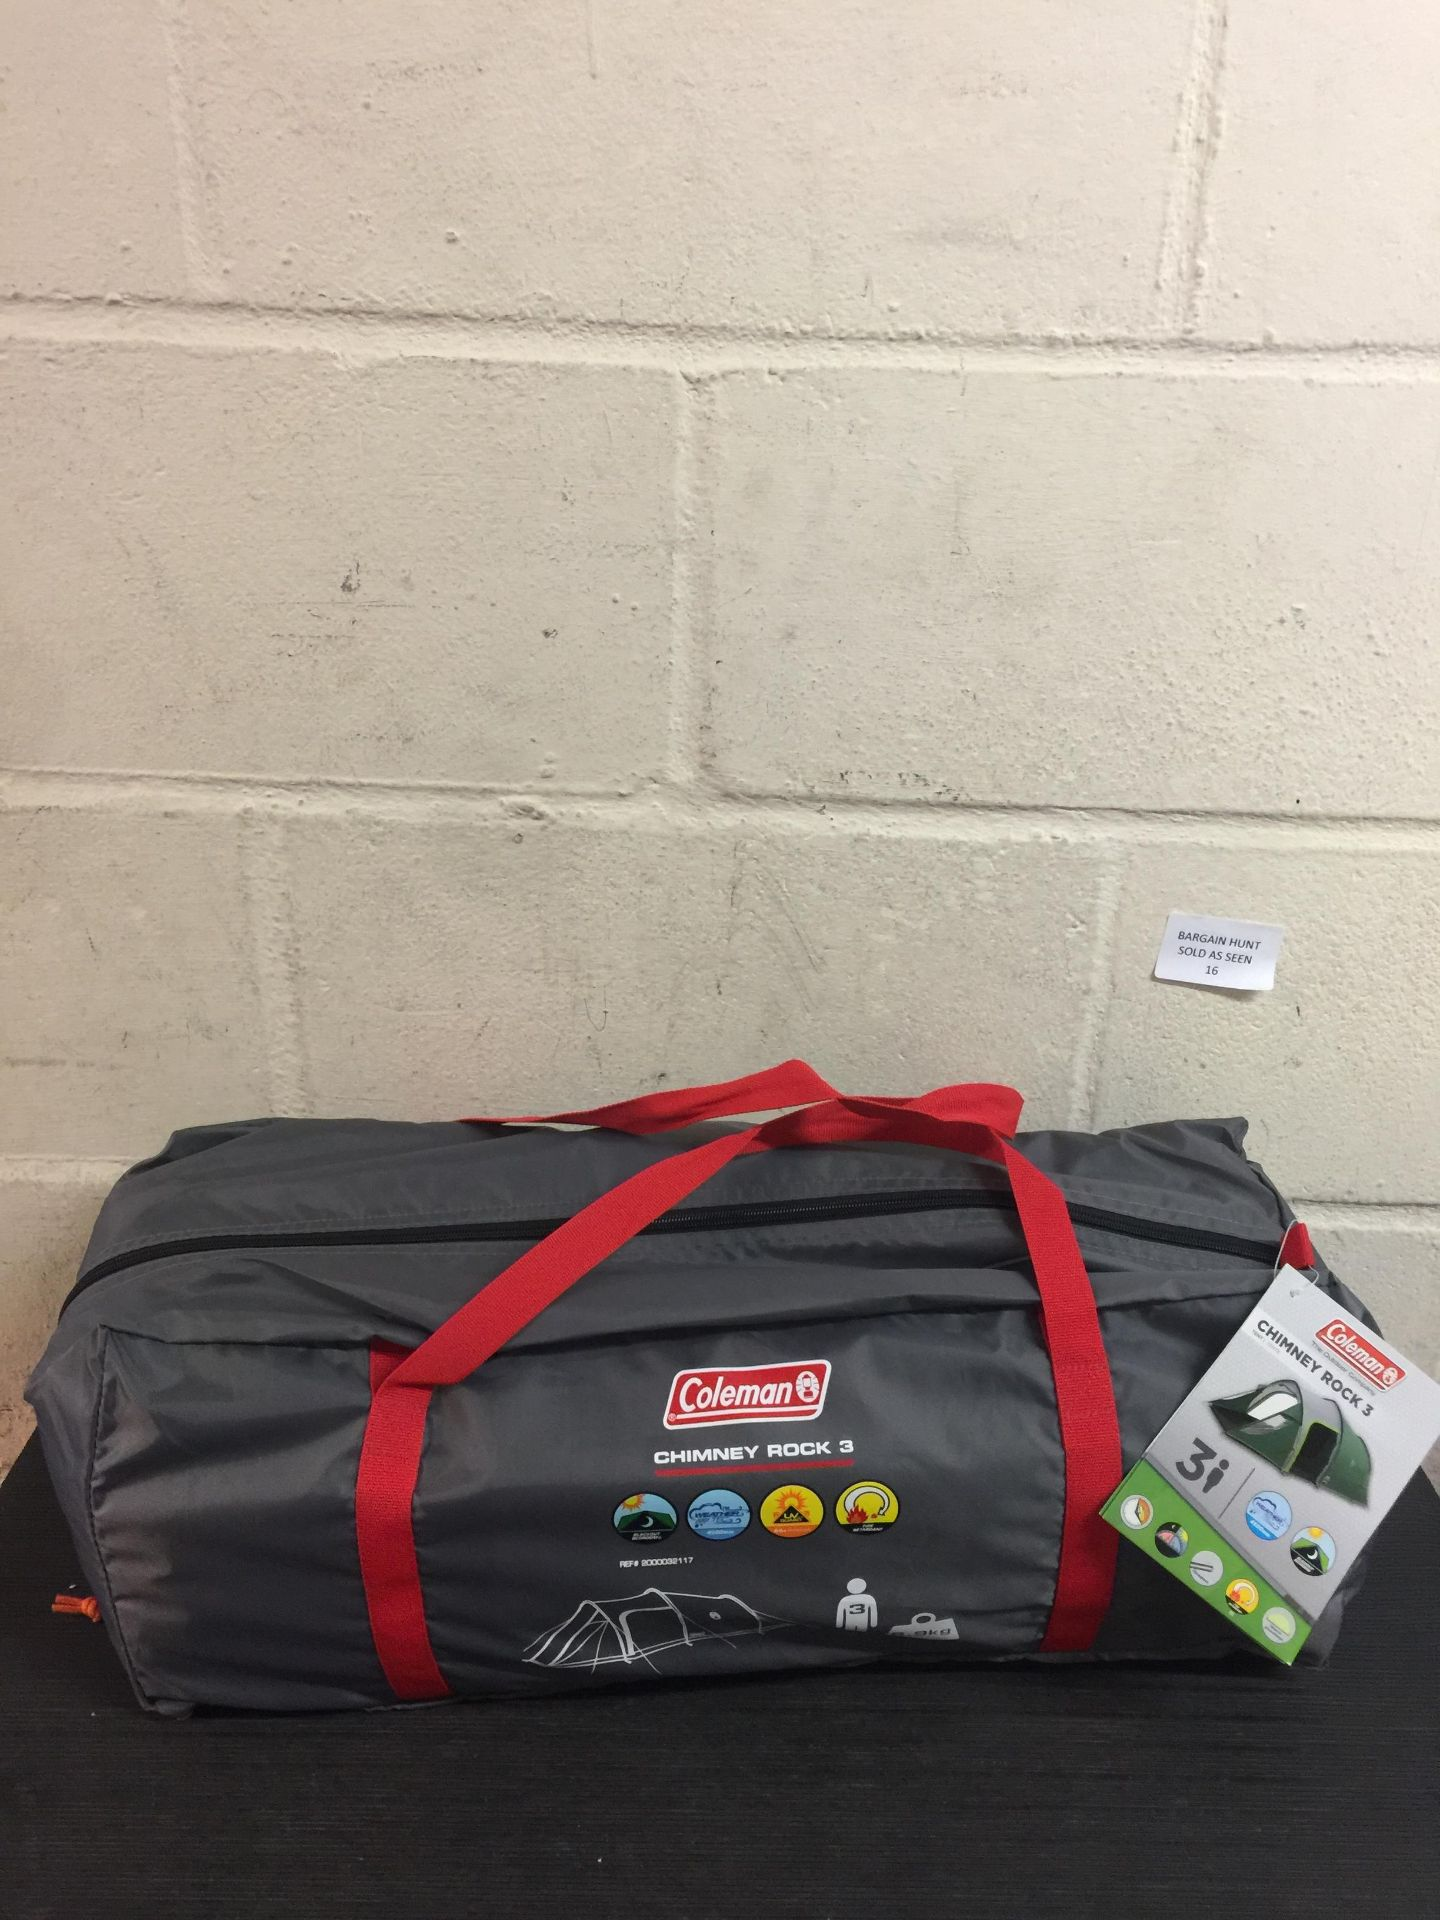 Lot 16 - Coleman Unisex Chimney Rock 3 Plus Tent, Green and Grey RRP £180.99